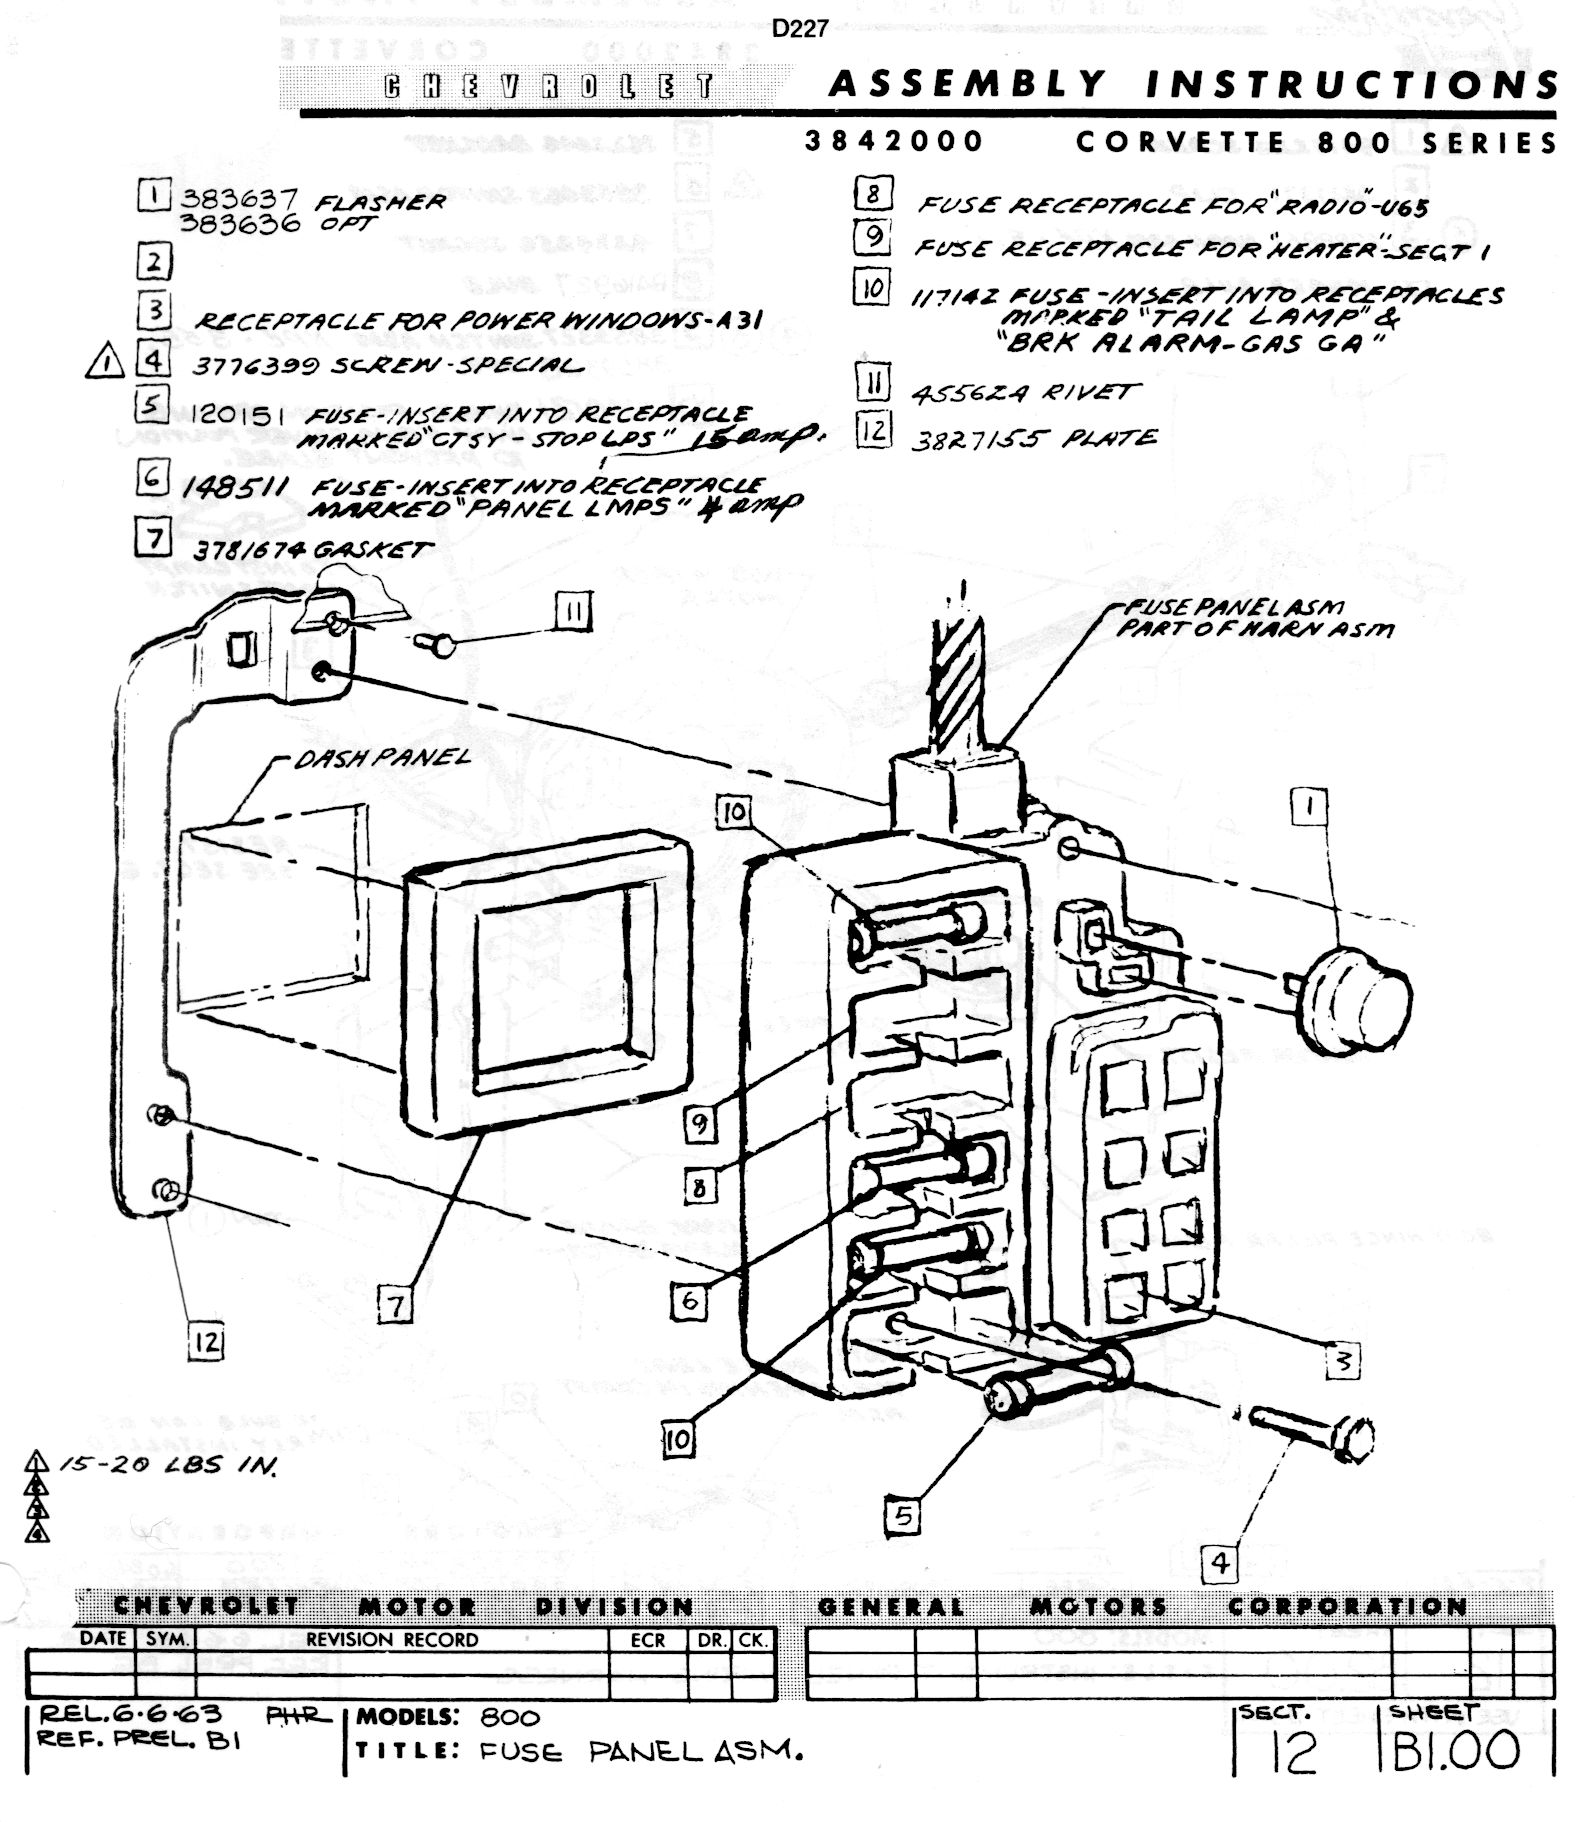 corvette fuse box diagram dgZvxgv corvette fuse box diagram image details fuse box diagram for 1977 chevy c10 at crackthecode.co